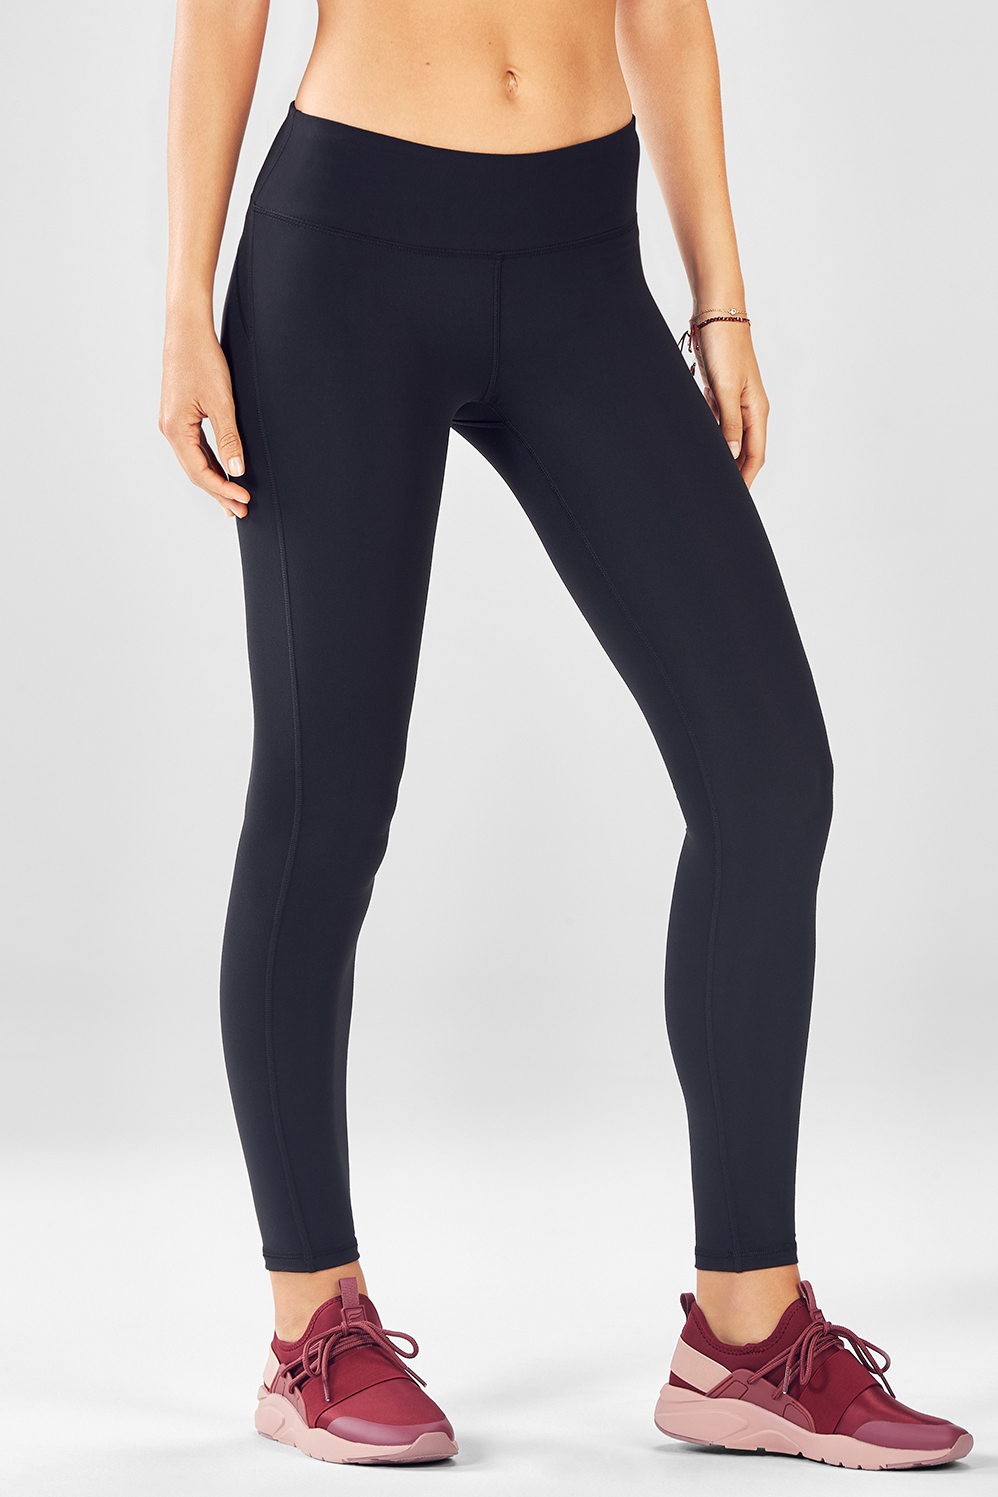 Fabletics Tight Salar Solid Powerform Legging Womens Black Size M